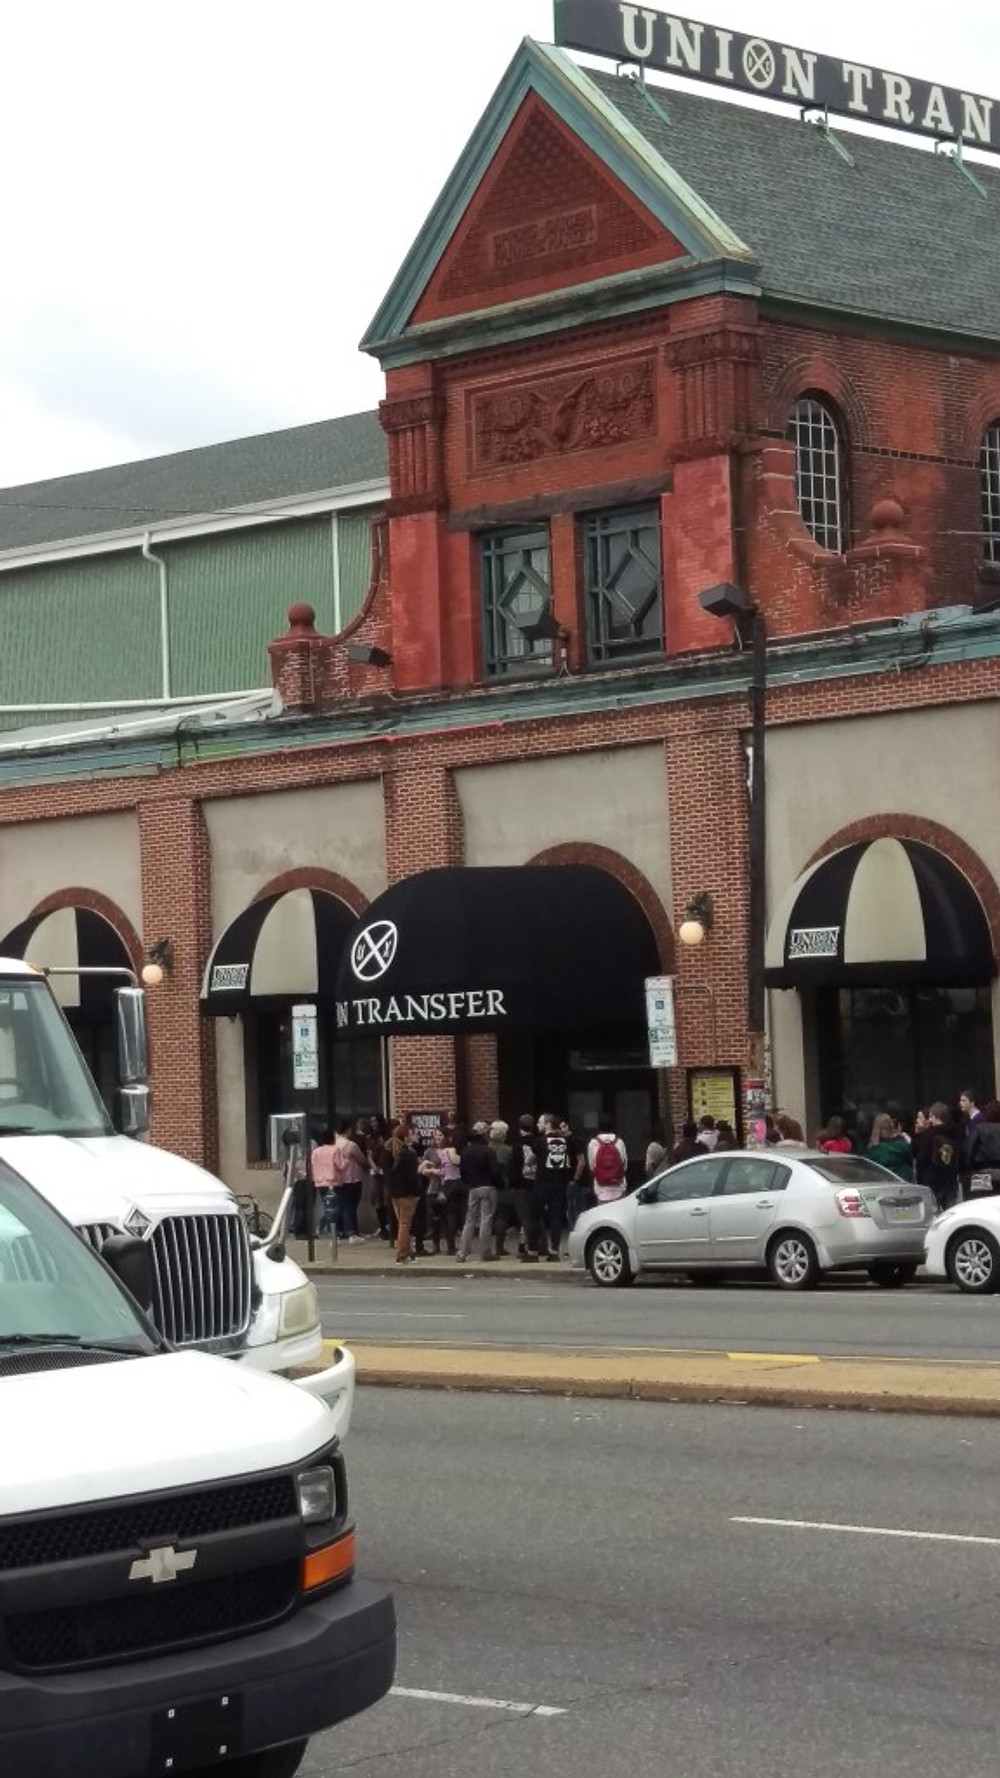 A picture of the outside of Union Transfer.